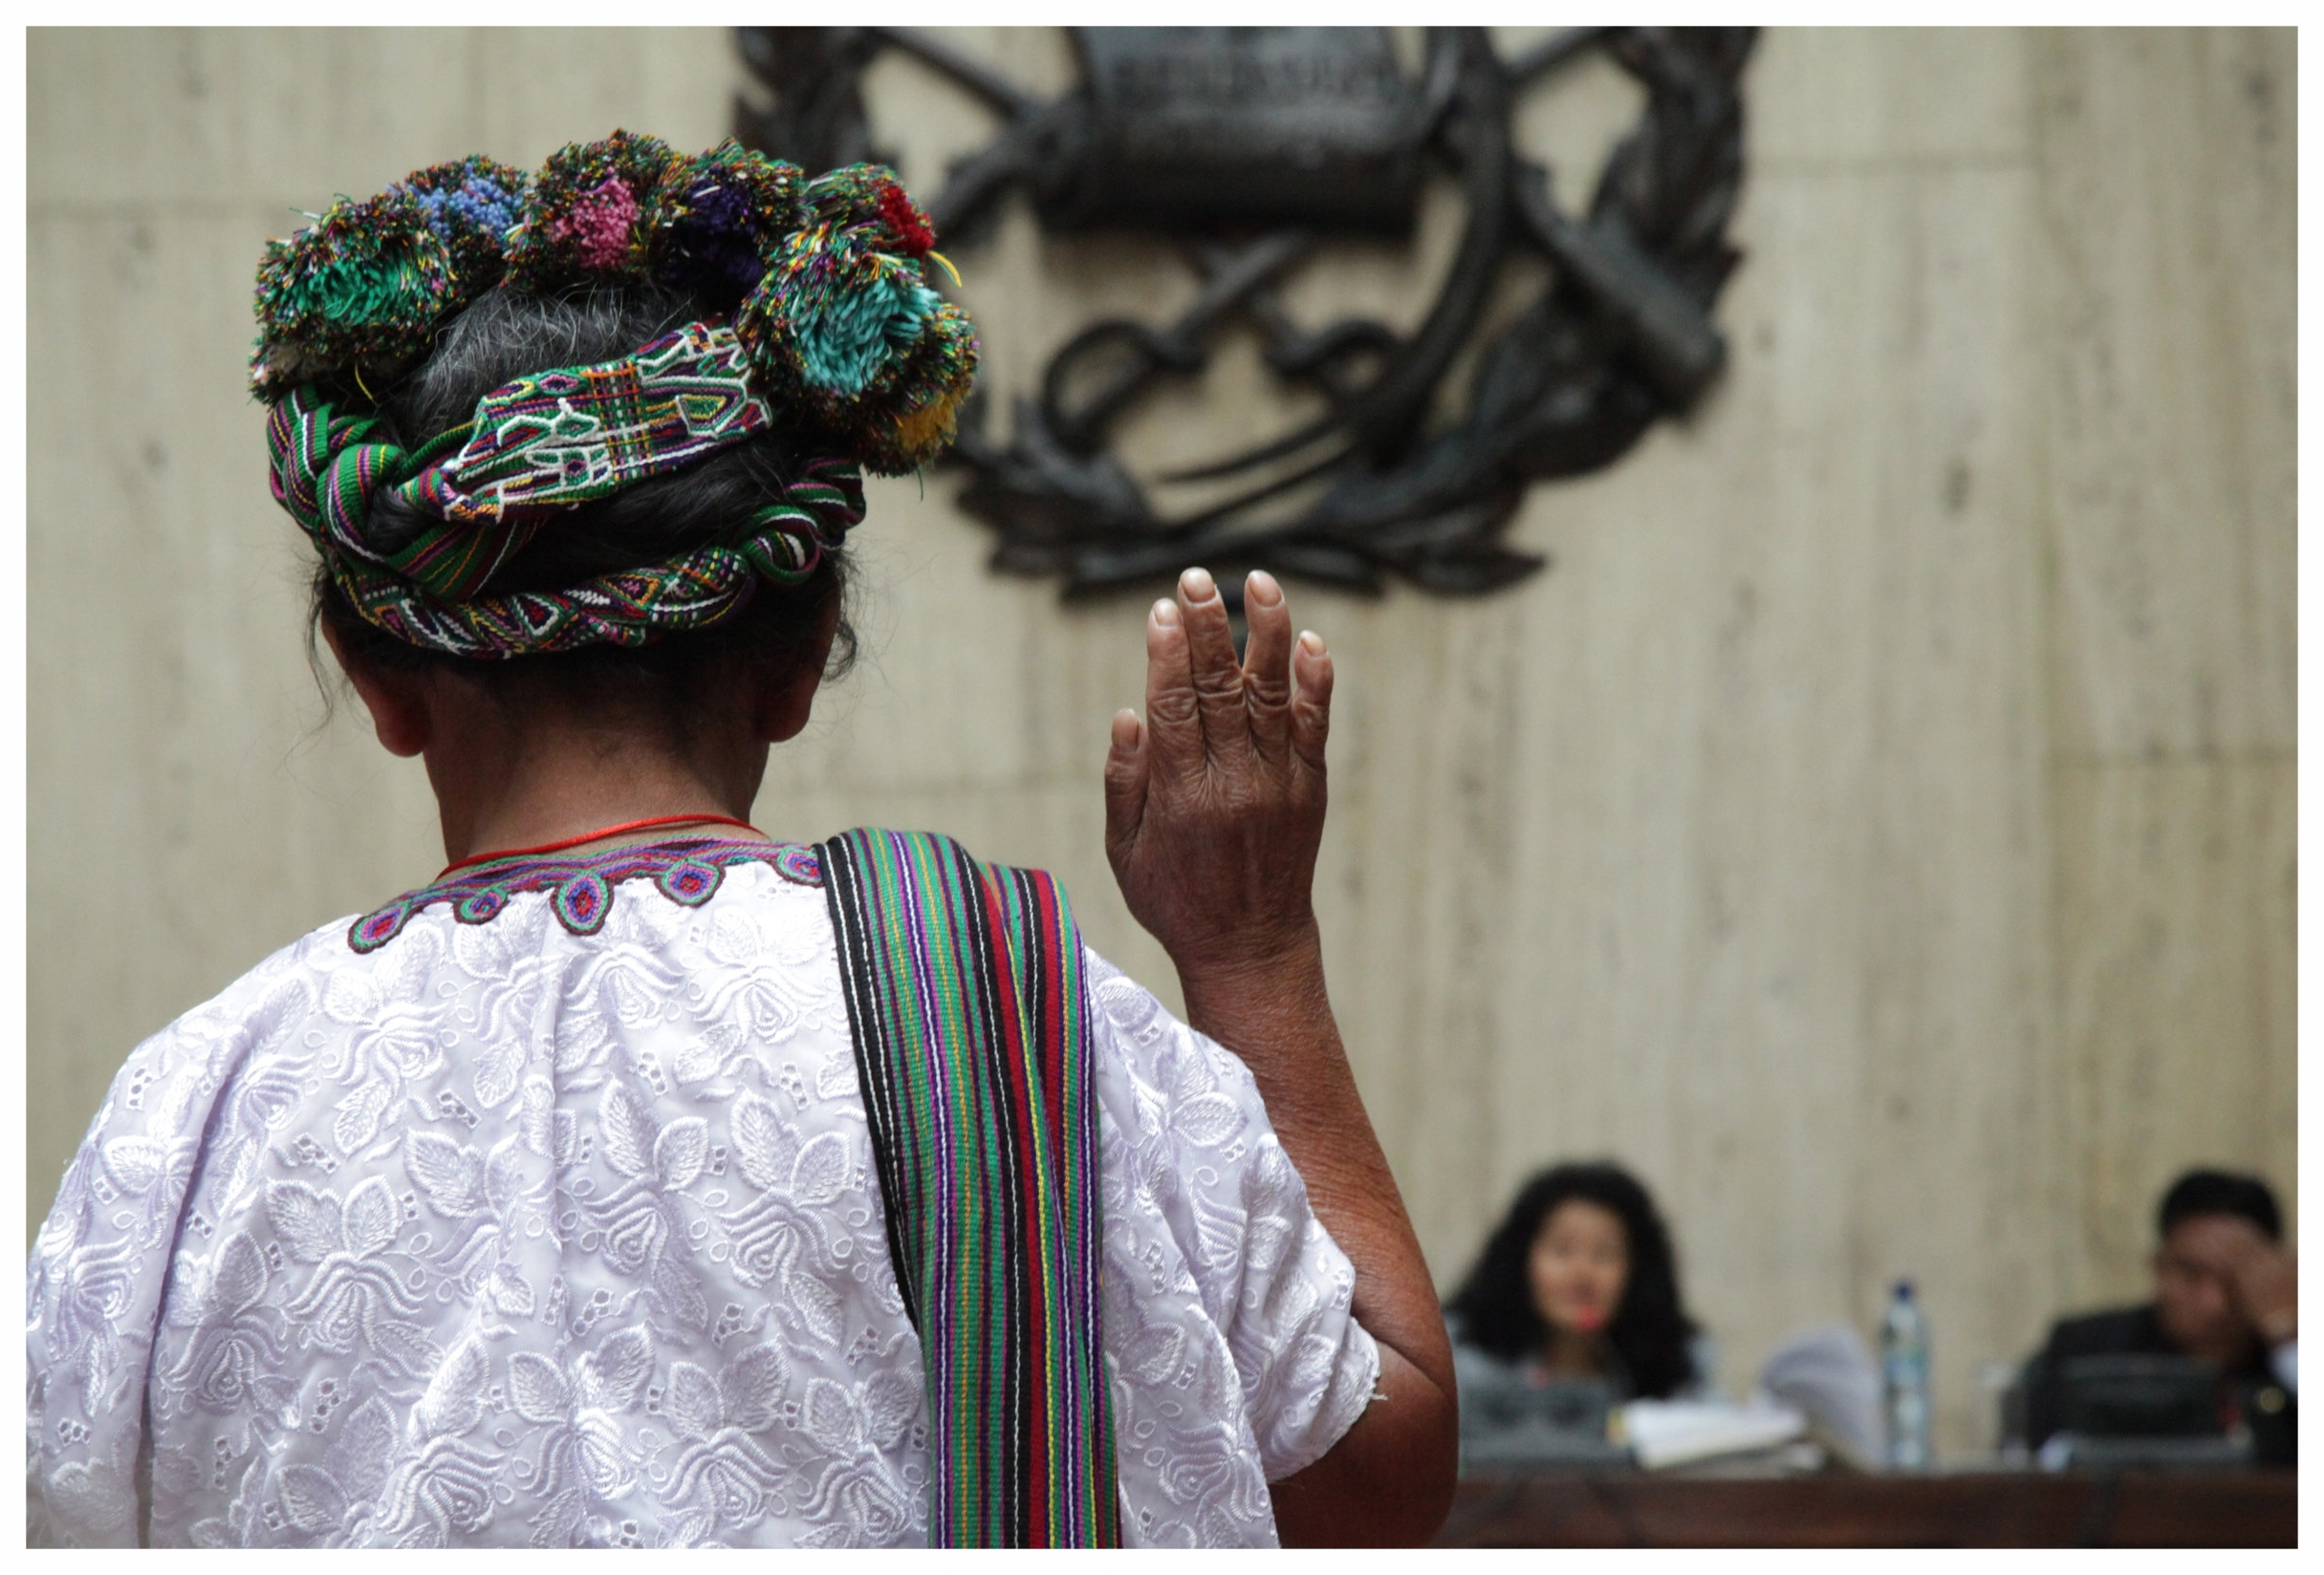 Catalina Sánchez testifies during the genocide trial of former Guatemalan military dictator Rios Montt in 2013. (Photo: Elena Hermosa/Wikimedia Commons)